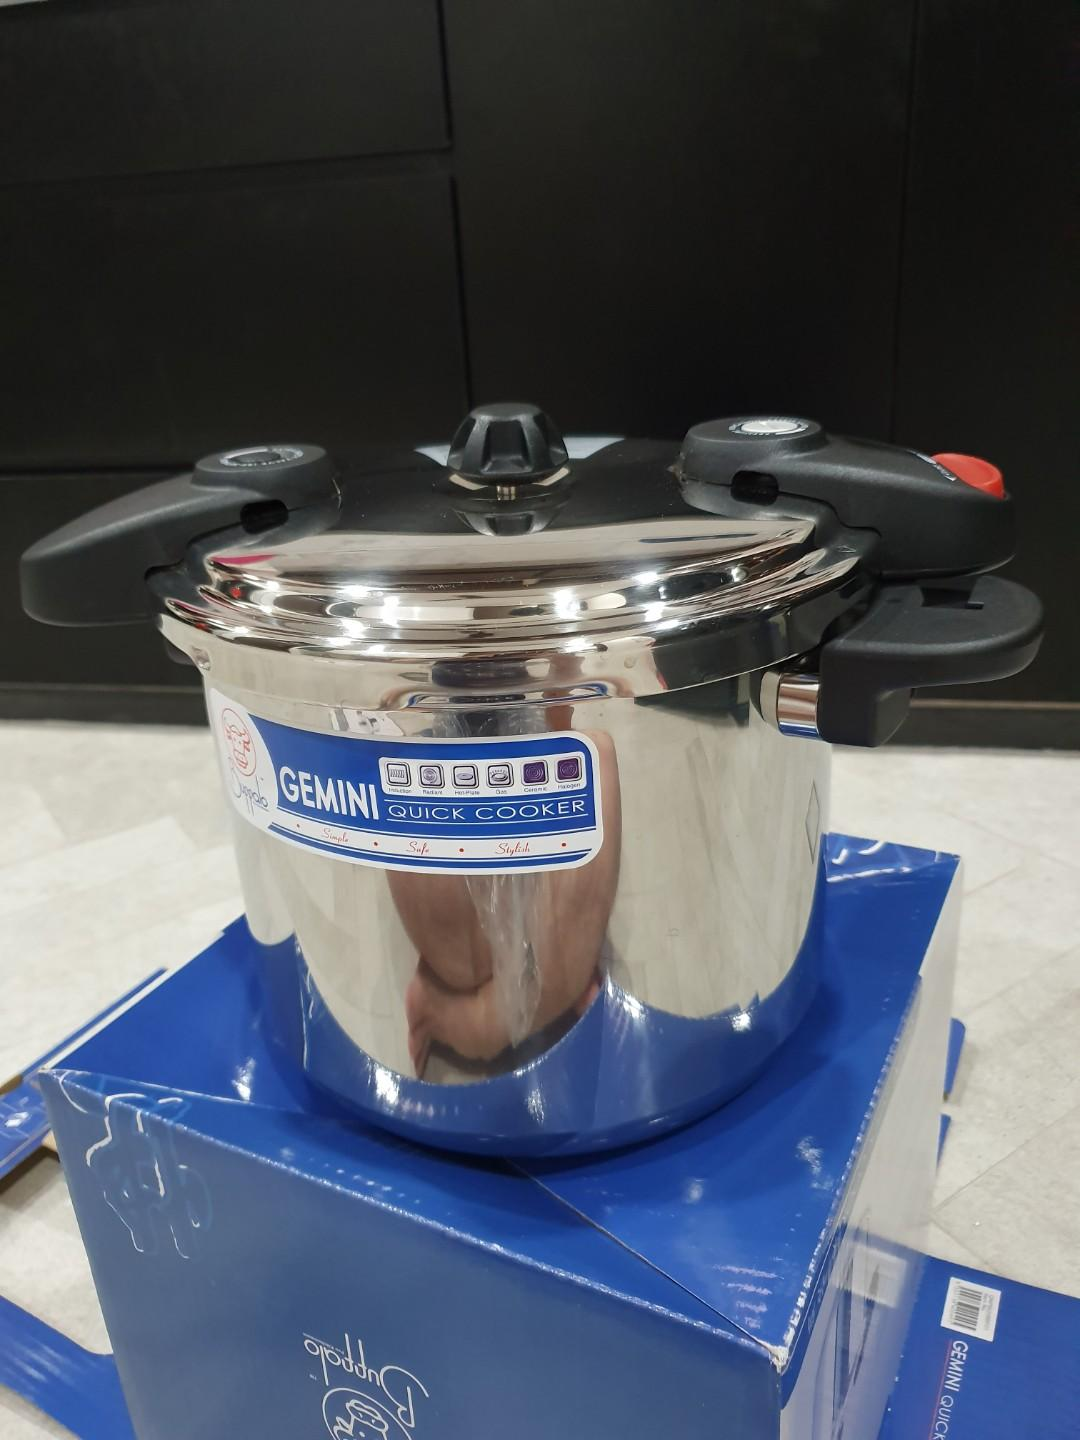 Premium stainless steel pan and pressure cooker